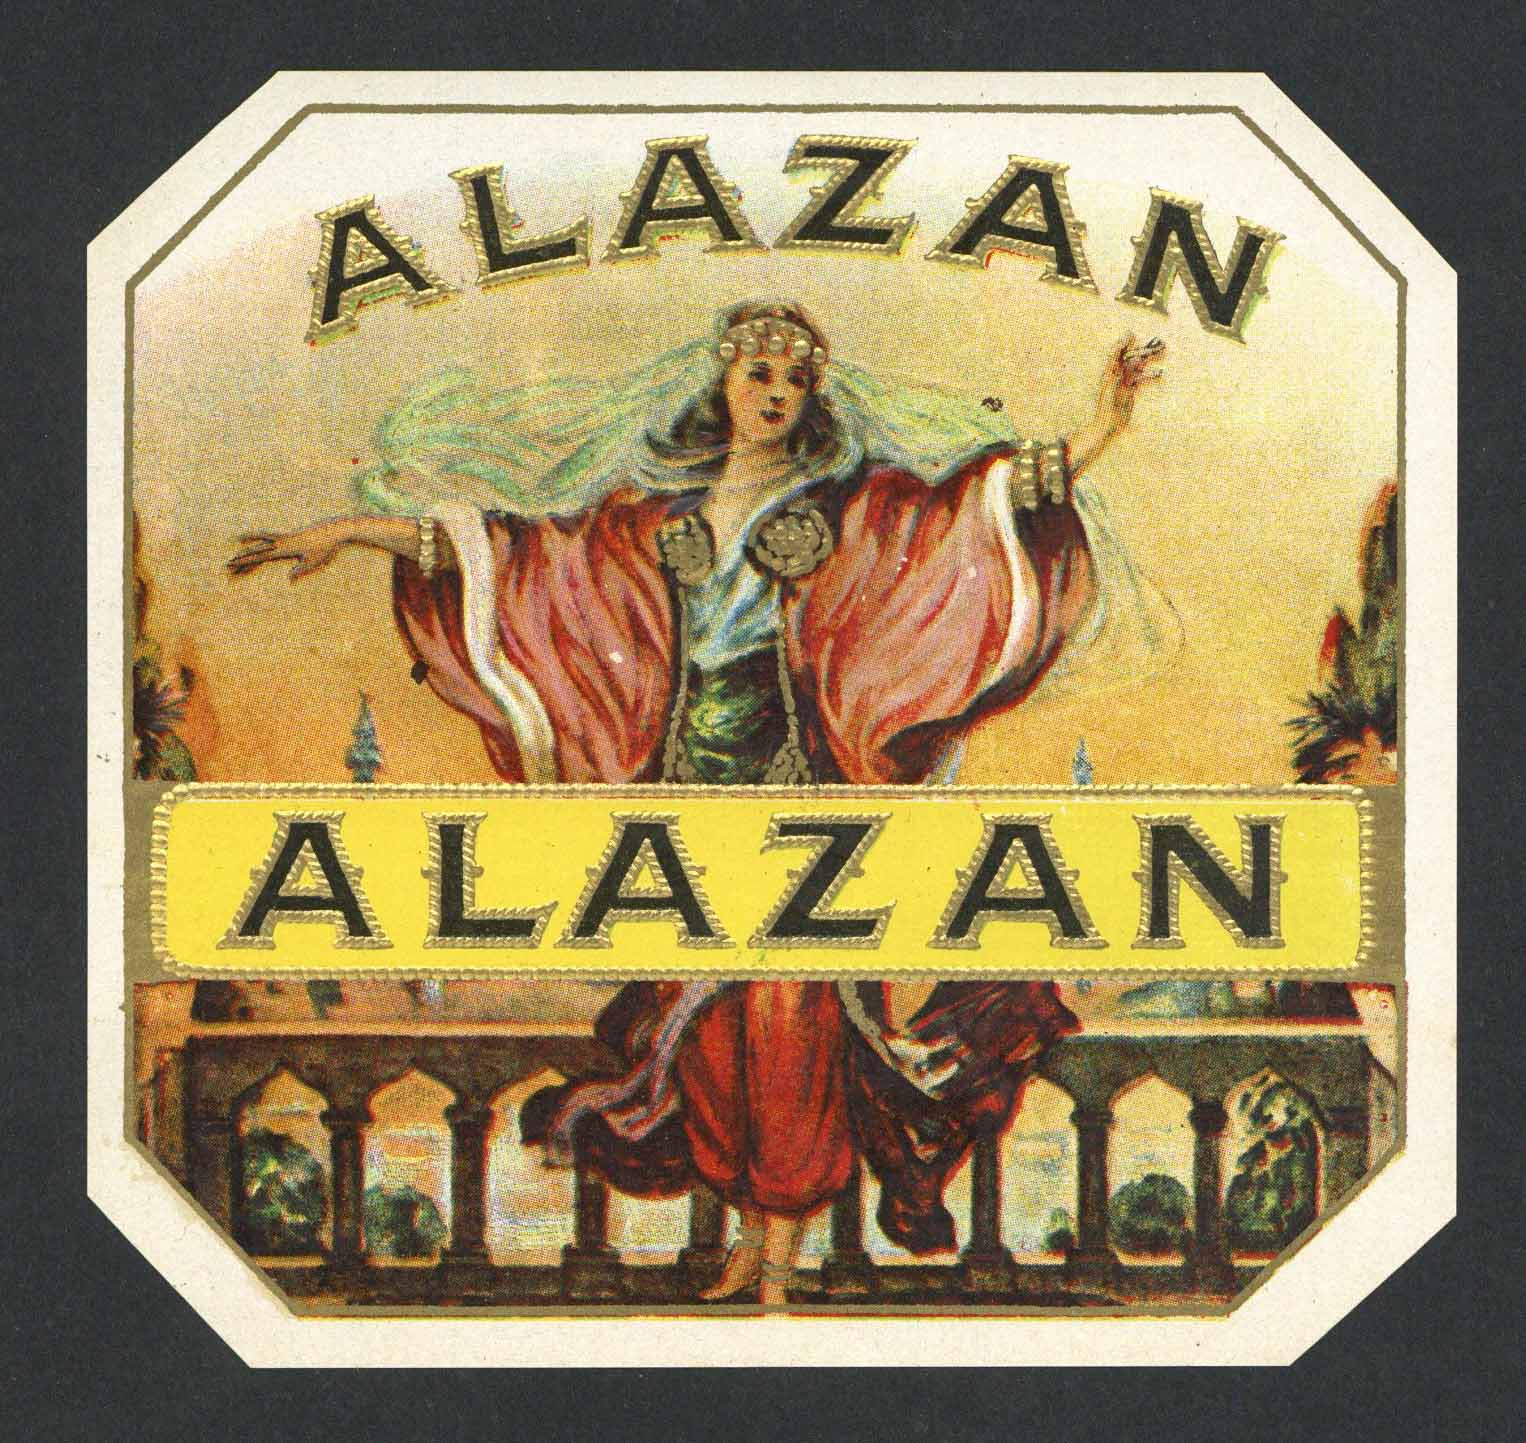 Alazan Brand outer Cigar Box Label